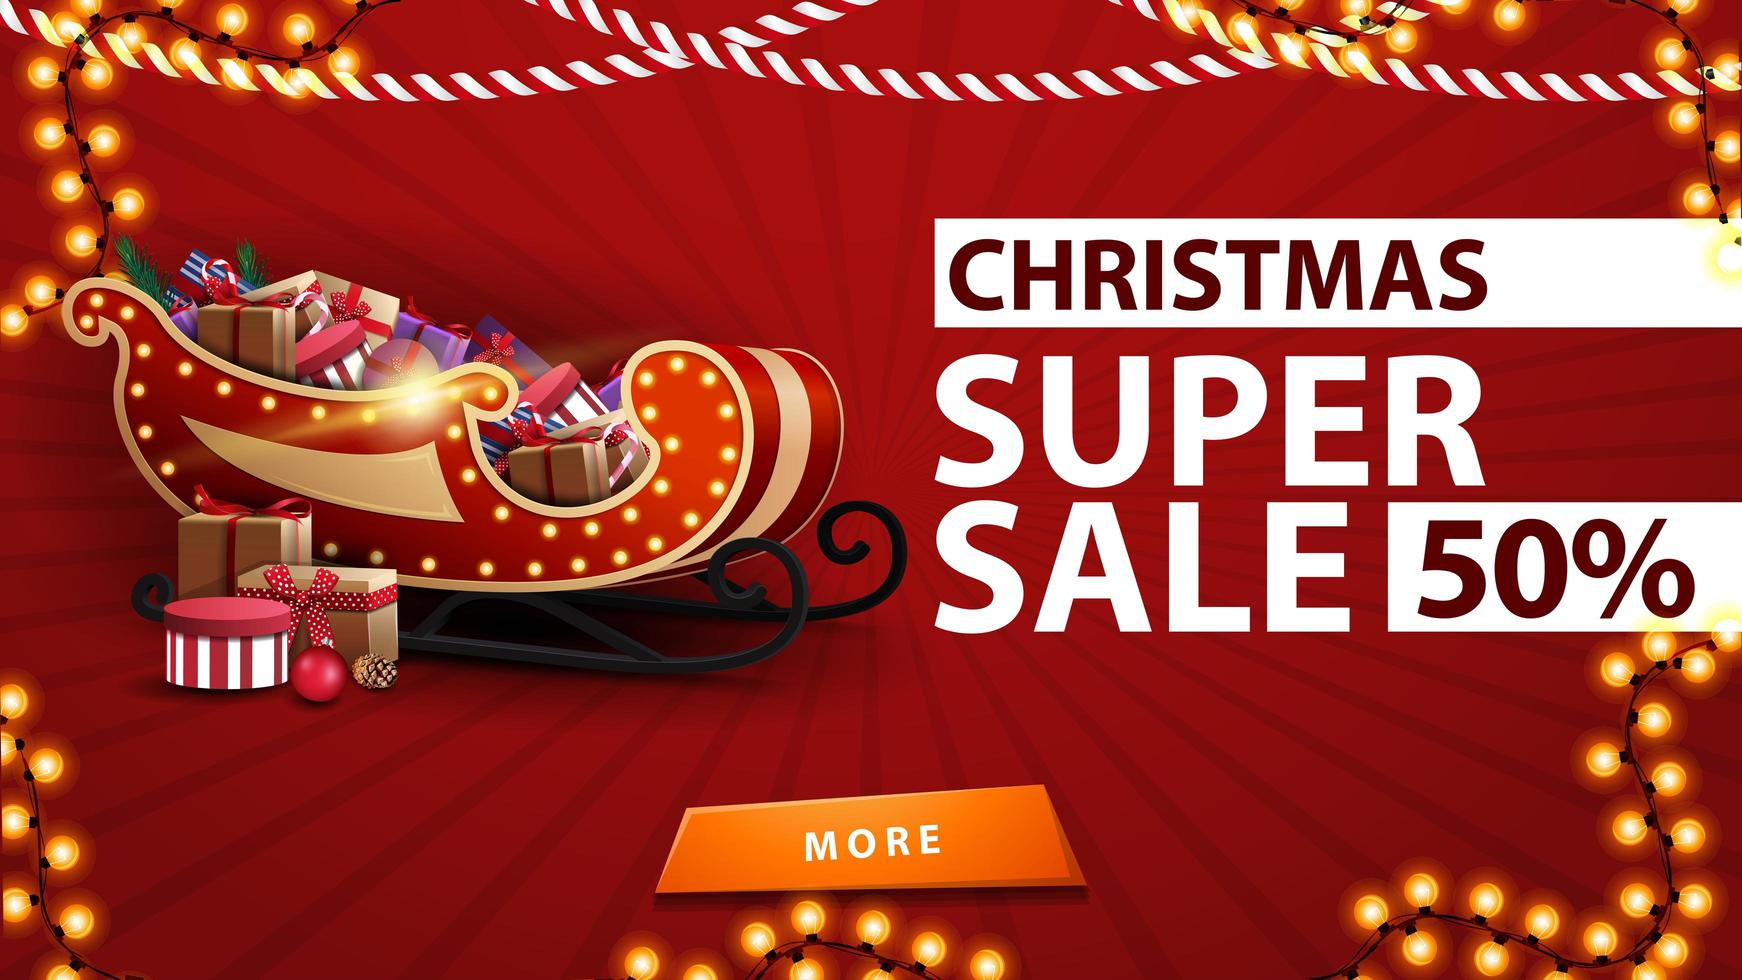 Christmas super sale, up to 50 off, red discount banner with garlands, button and Santa Sleigh with presents vector